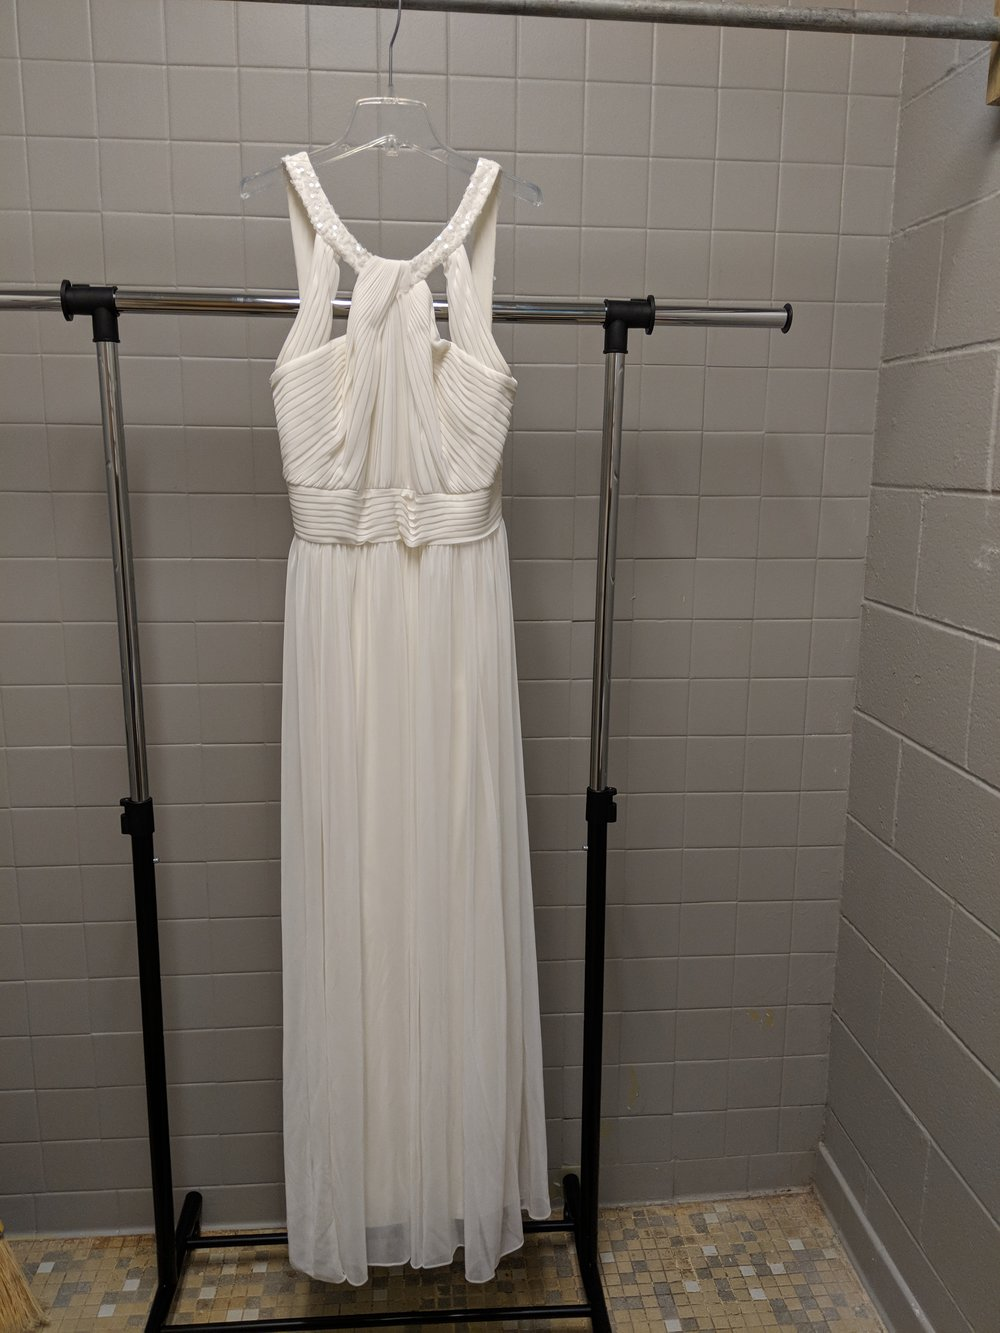 Dress 8 - Alex Evenings, Size 12. Approximately 62 inches long.